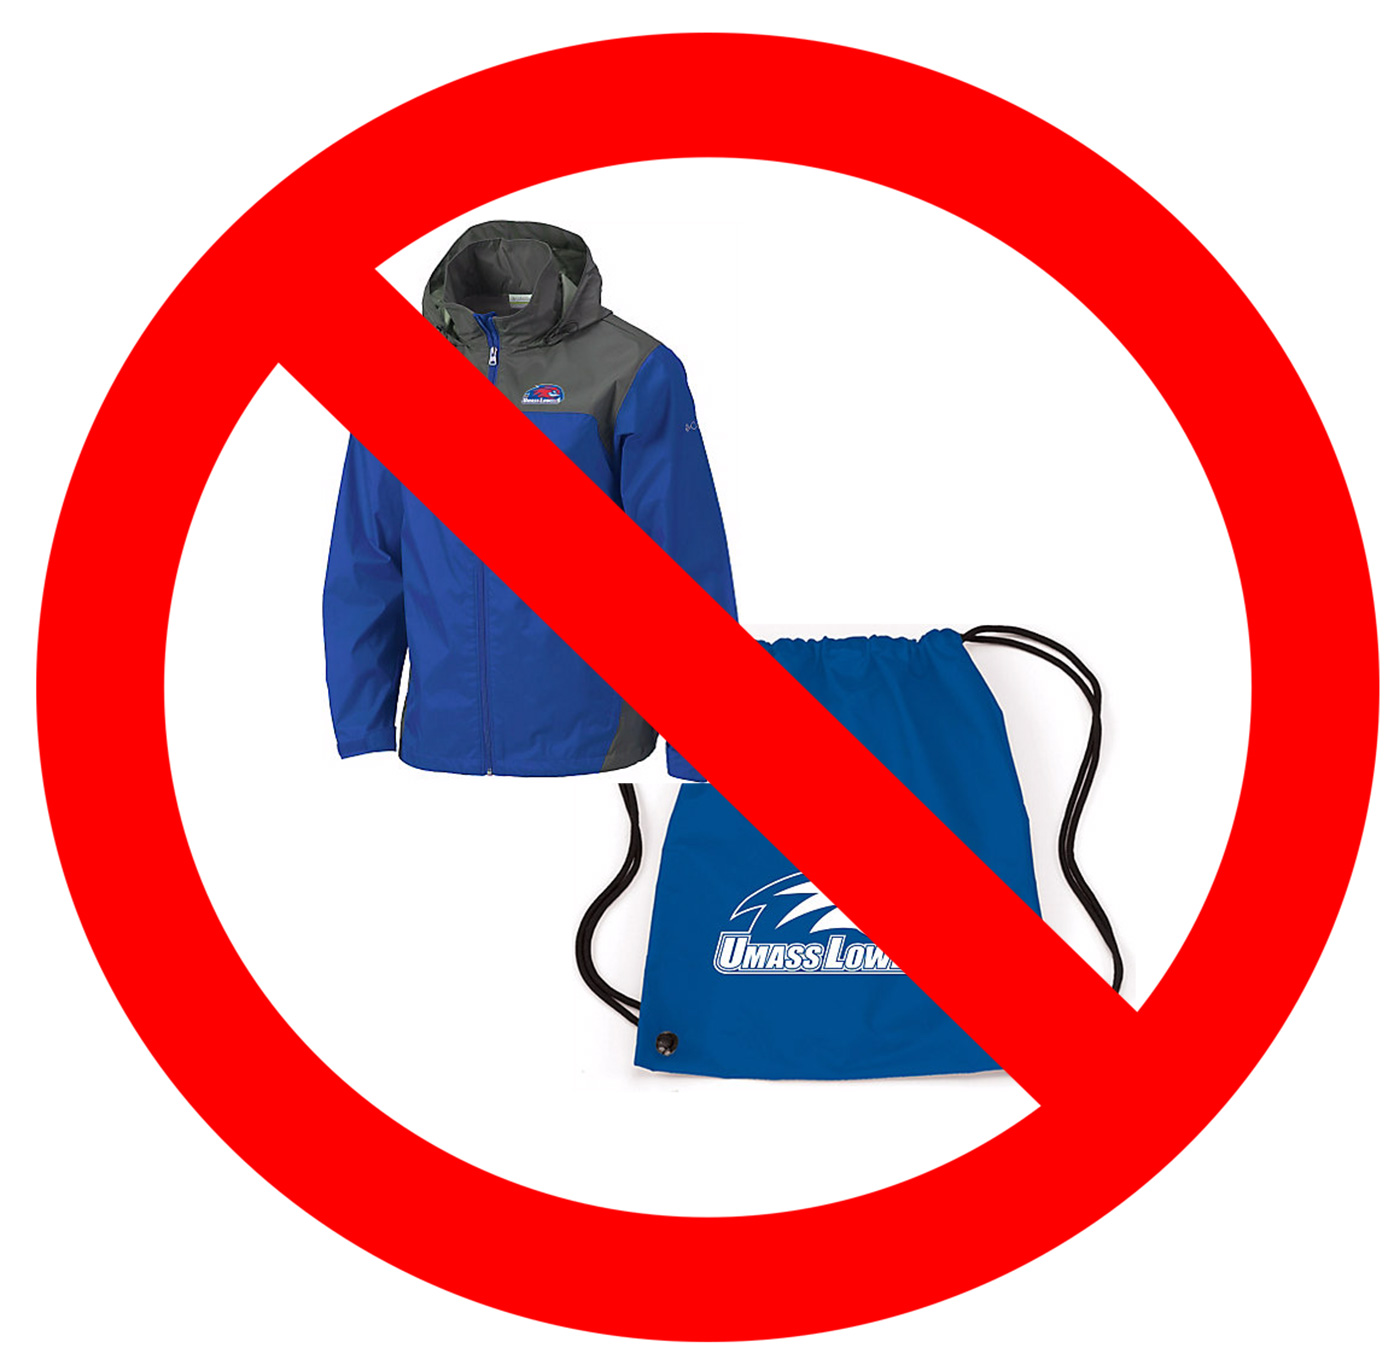 No sign over UMass Lowell jacket and bag. At the UMass Lowell Testing Centers: Leave your jacket and bags in the office. They cannot be taken into the testing areas.